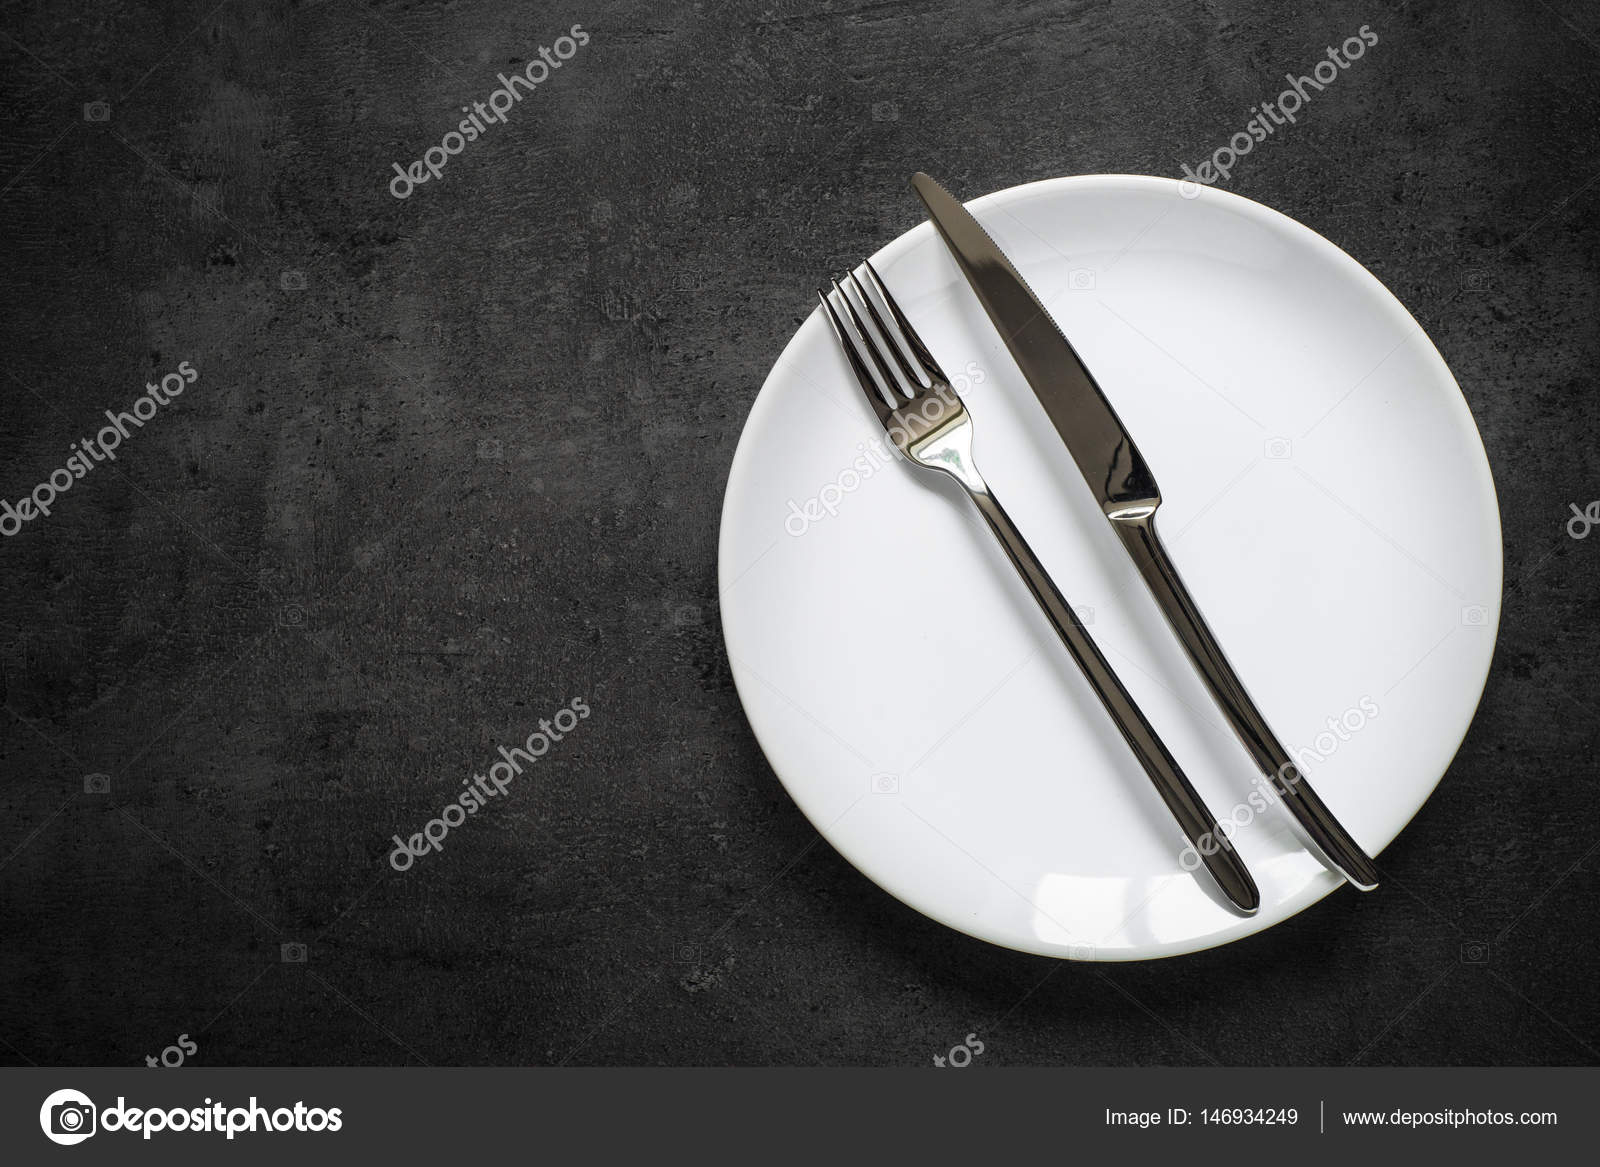 Table setting. Fork knife and white plate at dark slate table. \u2014 Stock Photo & Table setting. Fork knife and white plate at dark slate table ...